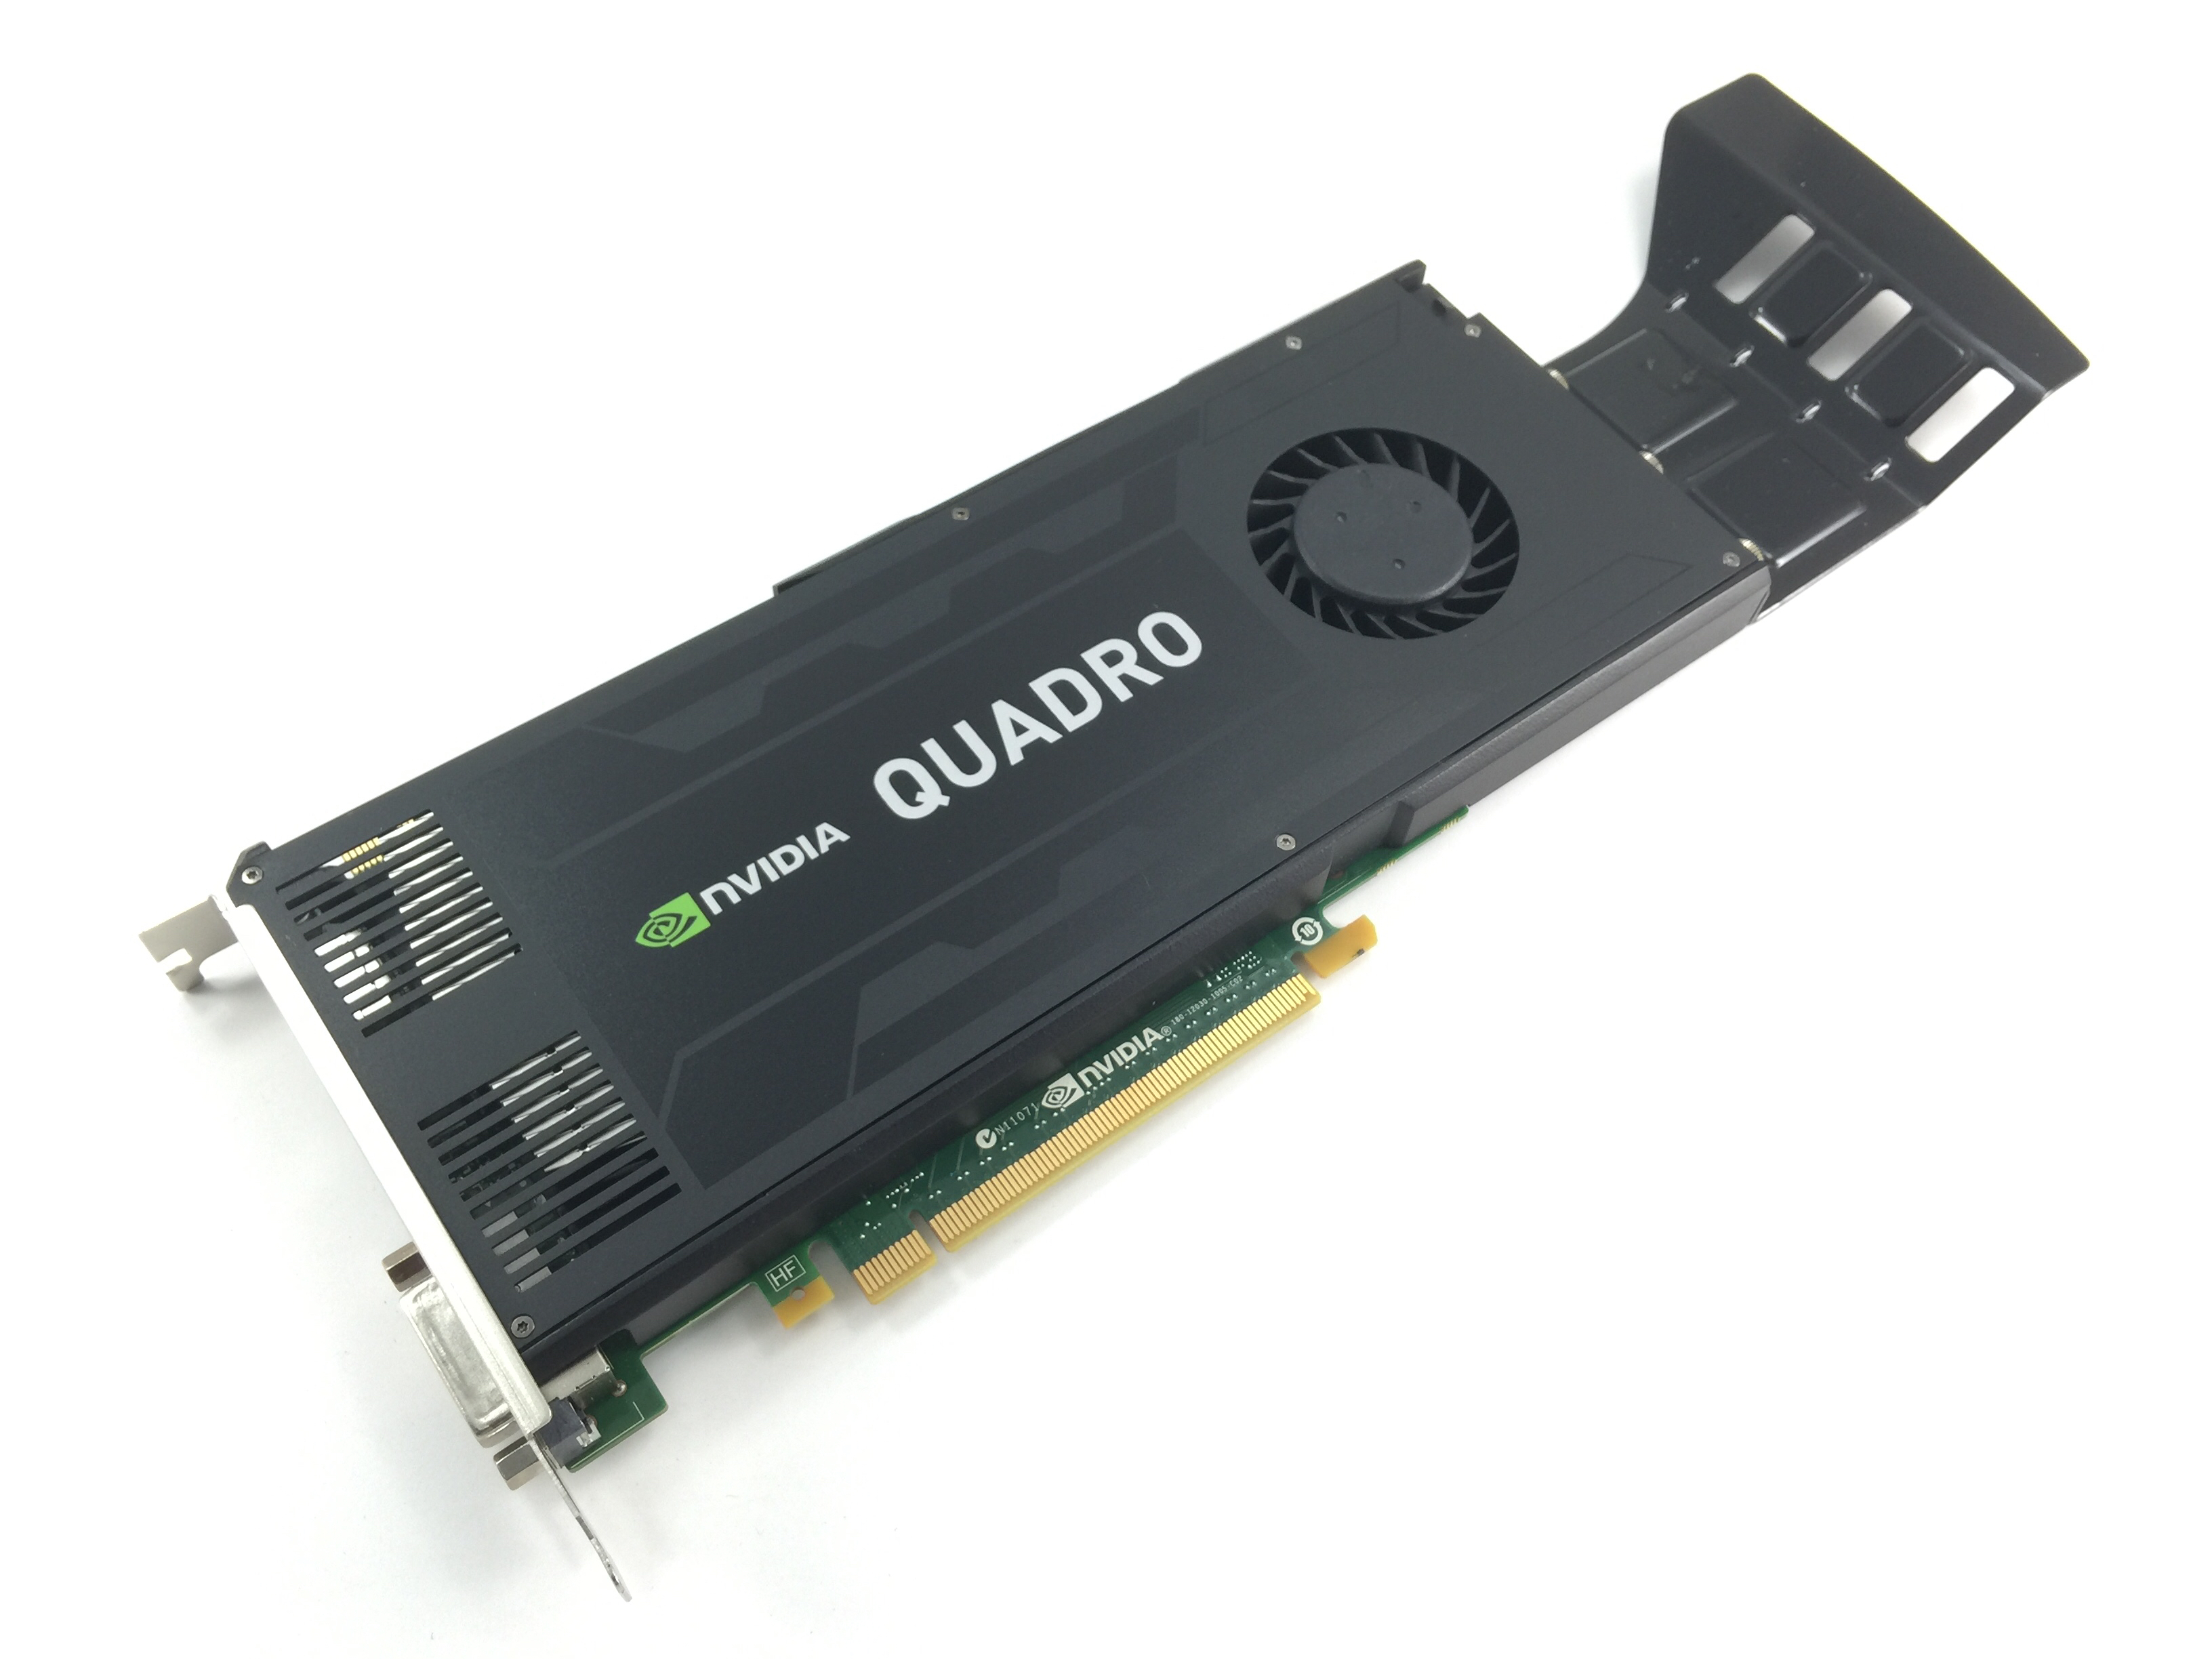 Dell Nvidia Quadro K4000 3GB GDDR5 2x DisplayPort 1x DVI PCI-E Graphics Card (D5R4G)